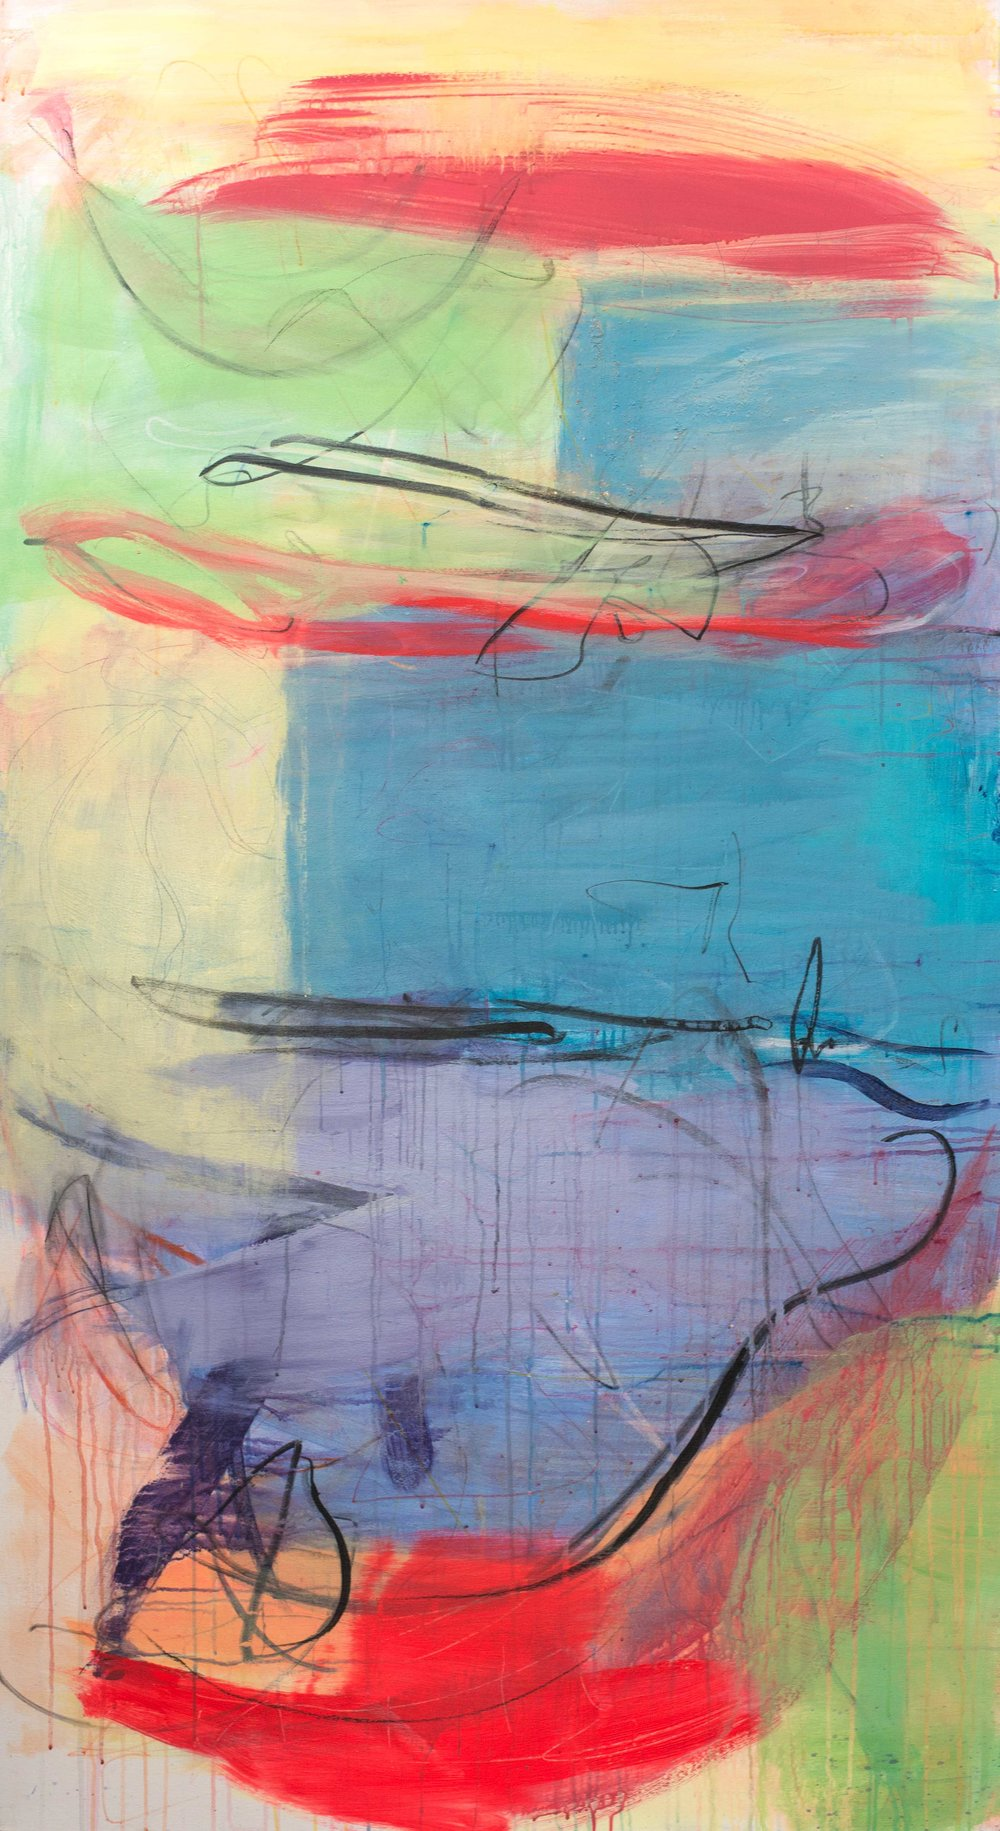 'Zennor' (202x110cm) £3,250.00. Visit the  shop  on our website to purchase.